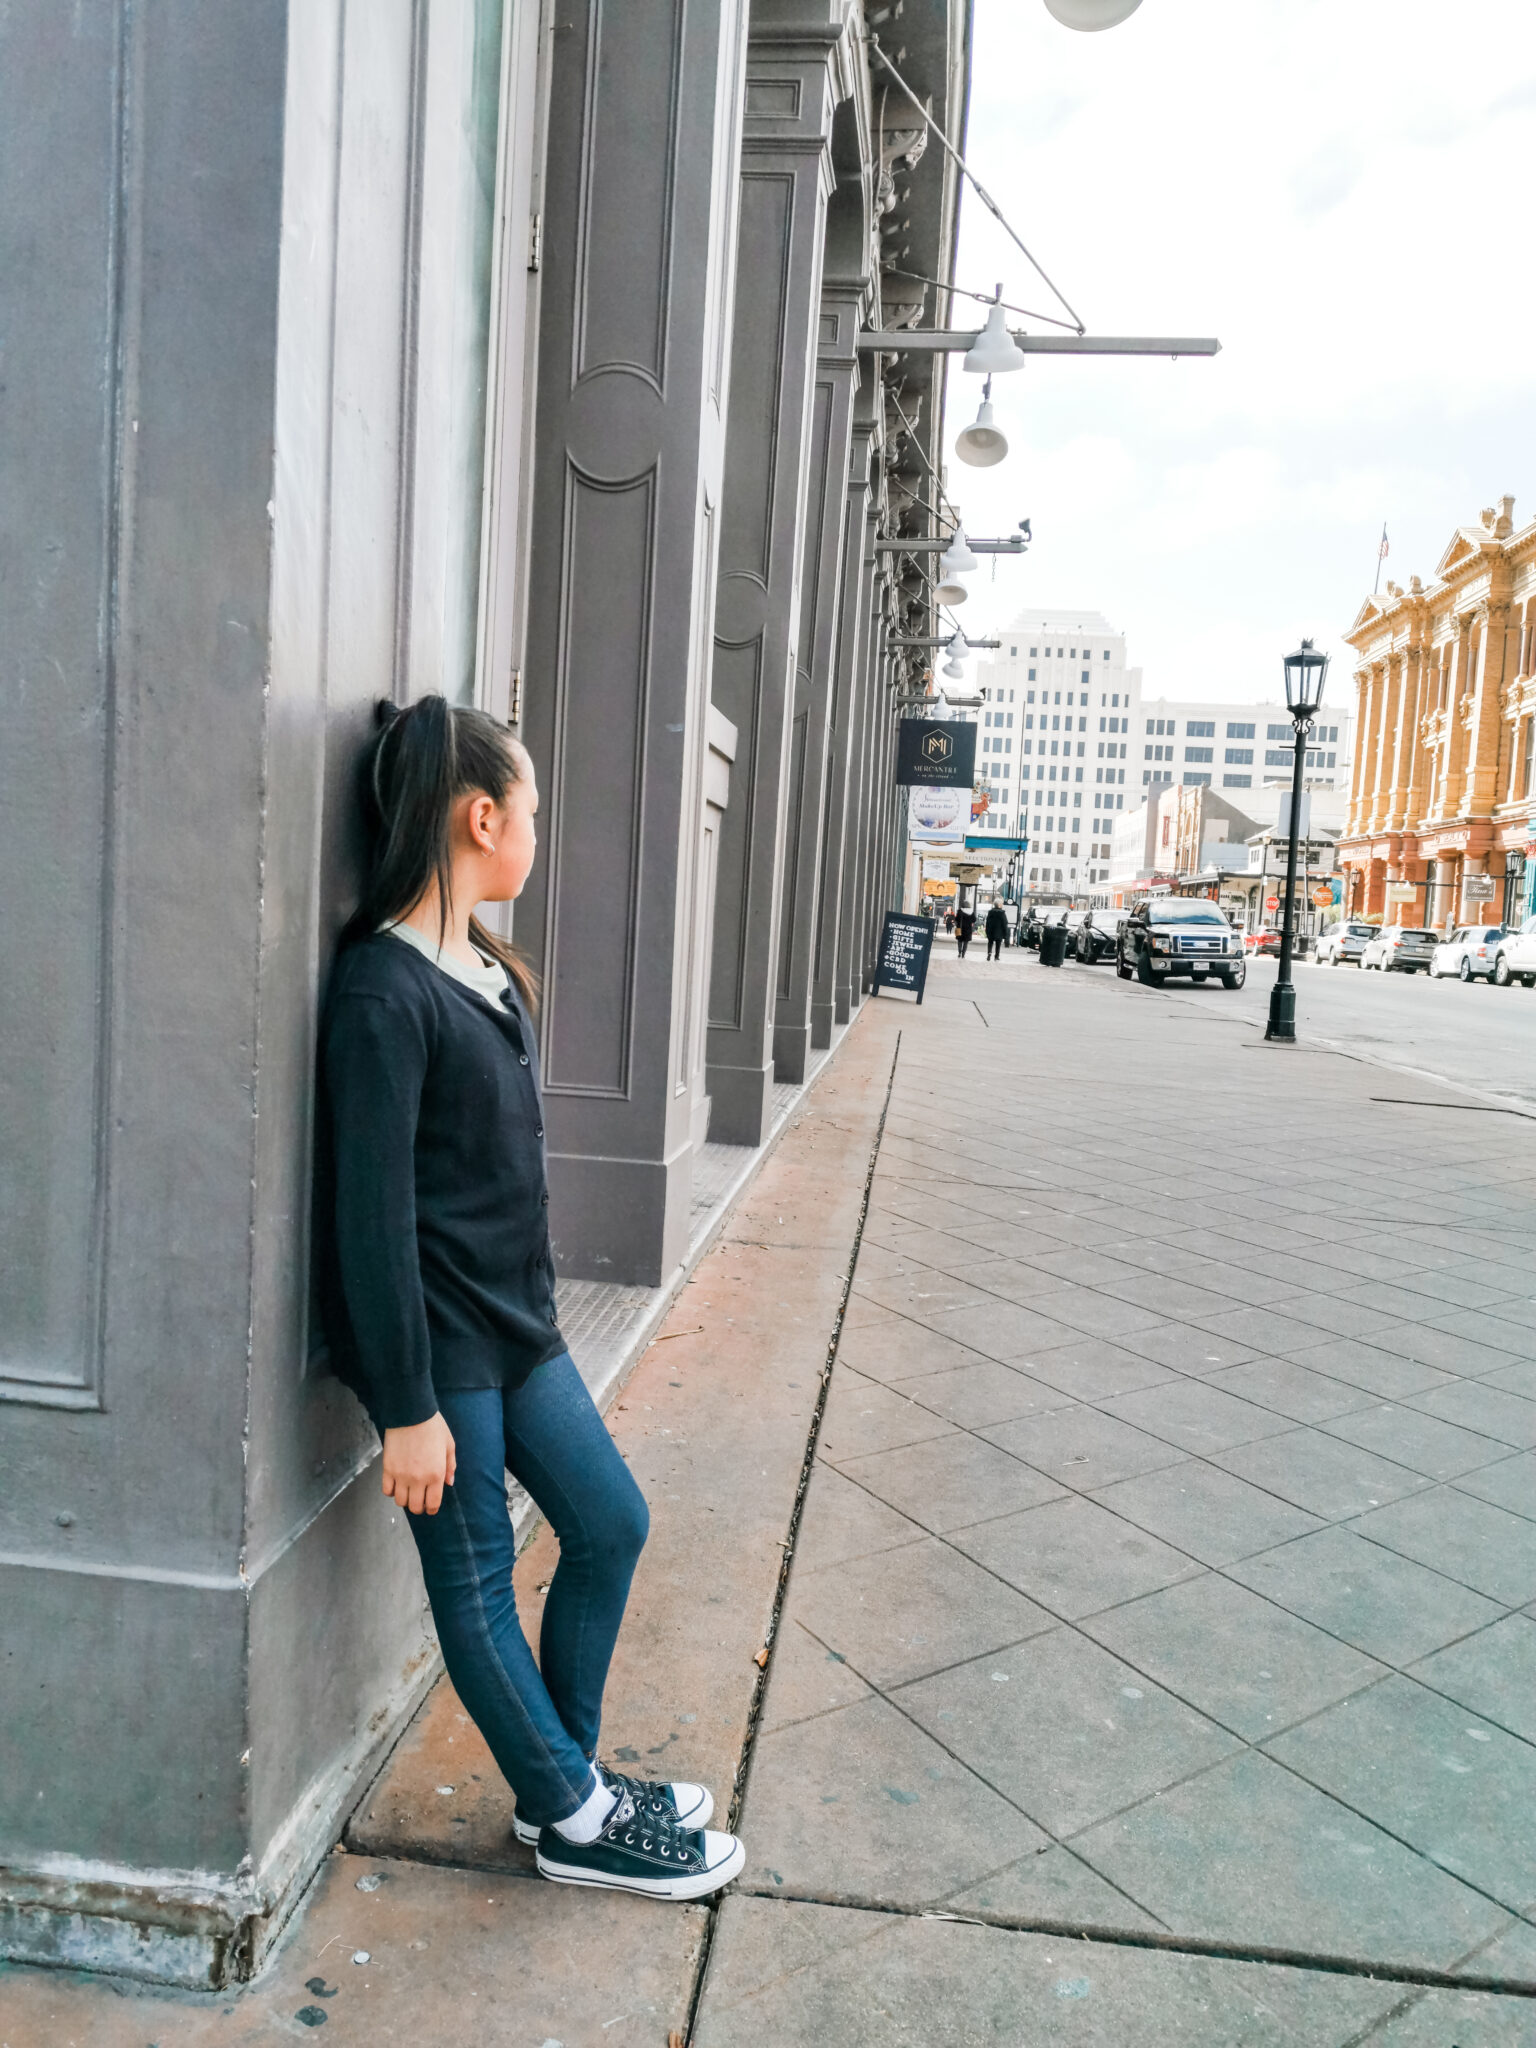 Mimi leans up against a wall by herself, the street is empty and only a few people can be seen at a distance.